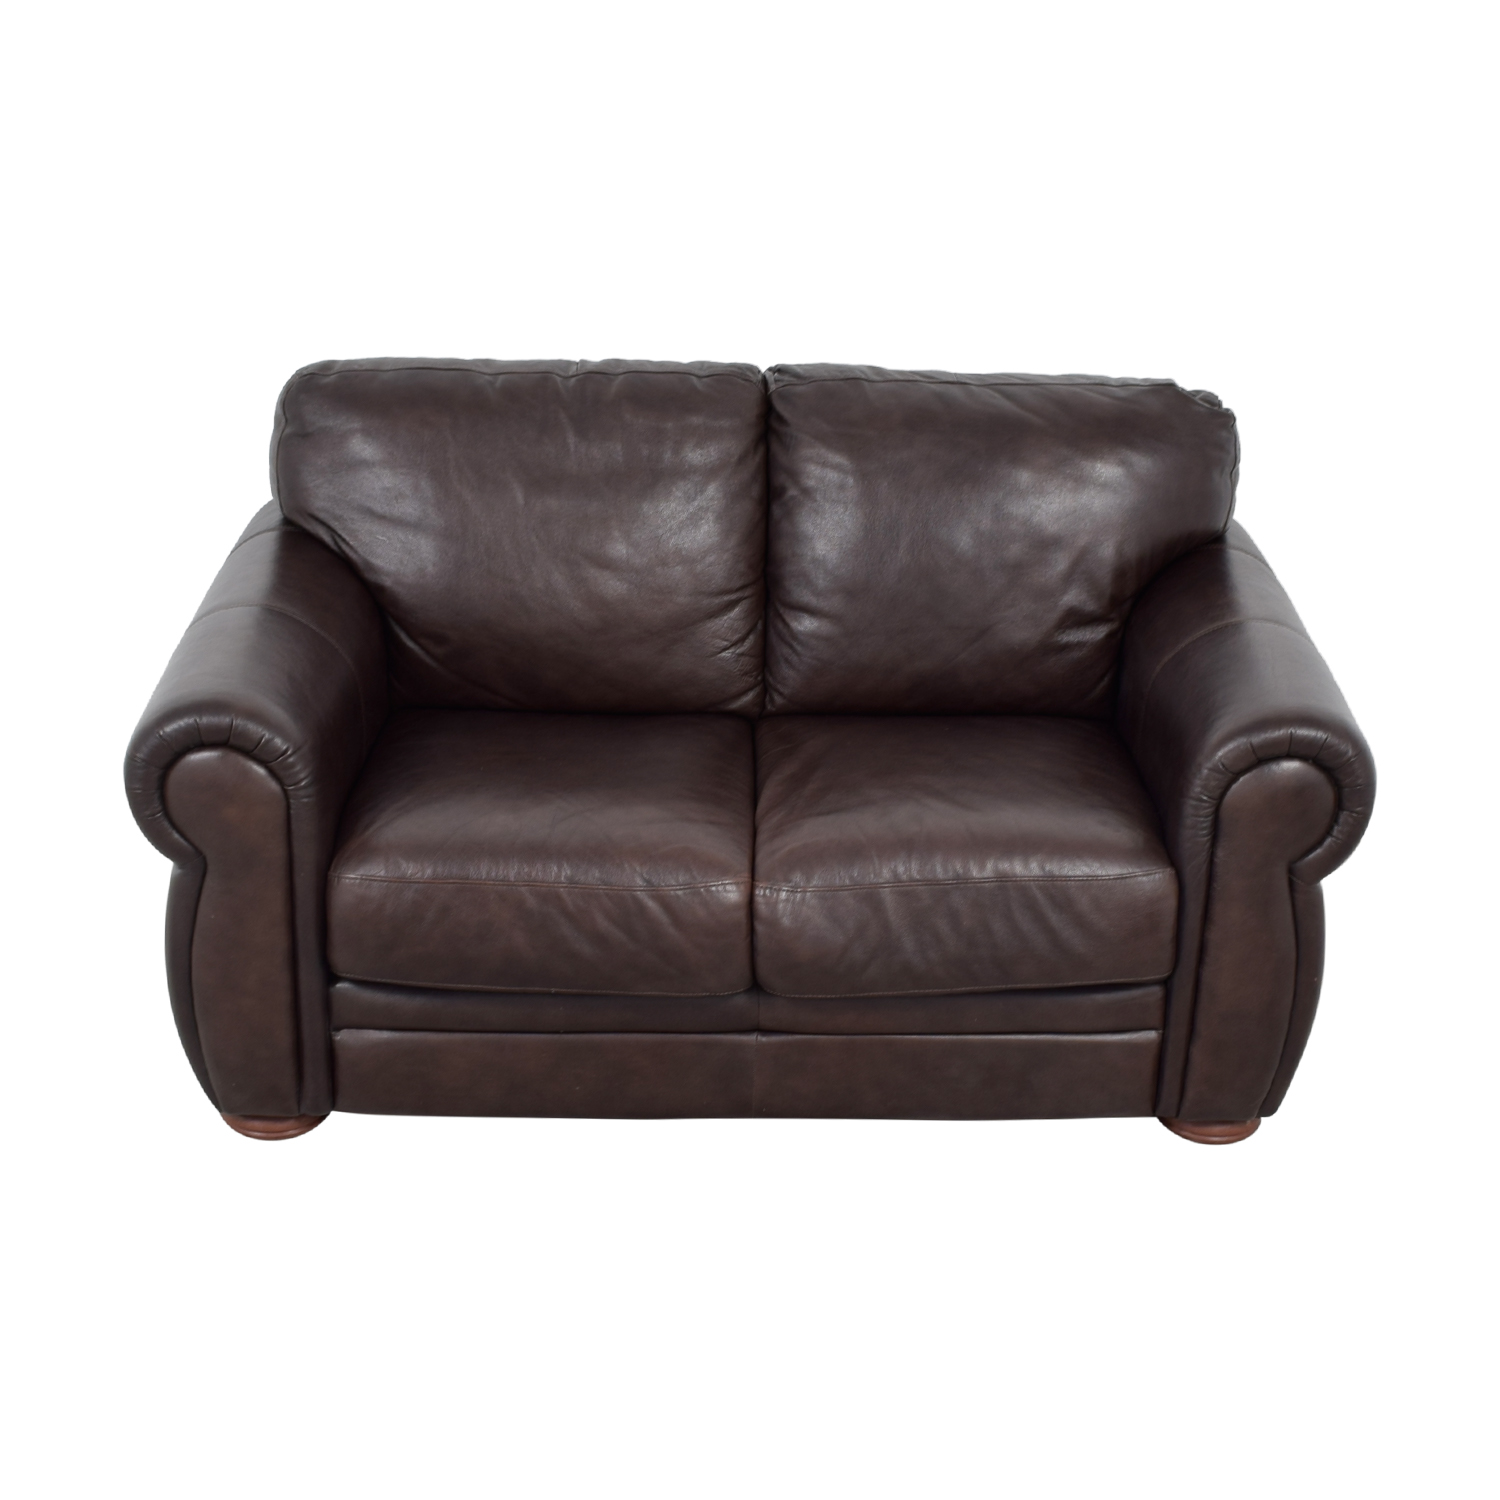 Cushions For Brown Leather Sofas 66 Off Raymour And Flanigan Raymour And Flanigan Brown